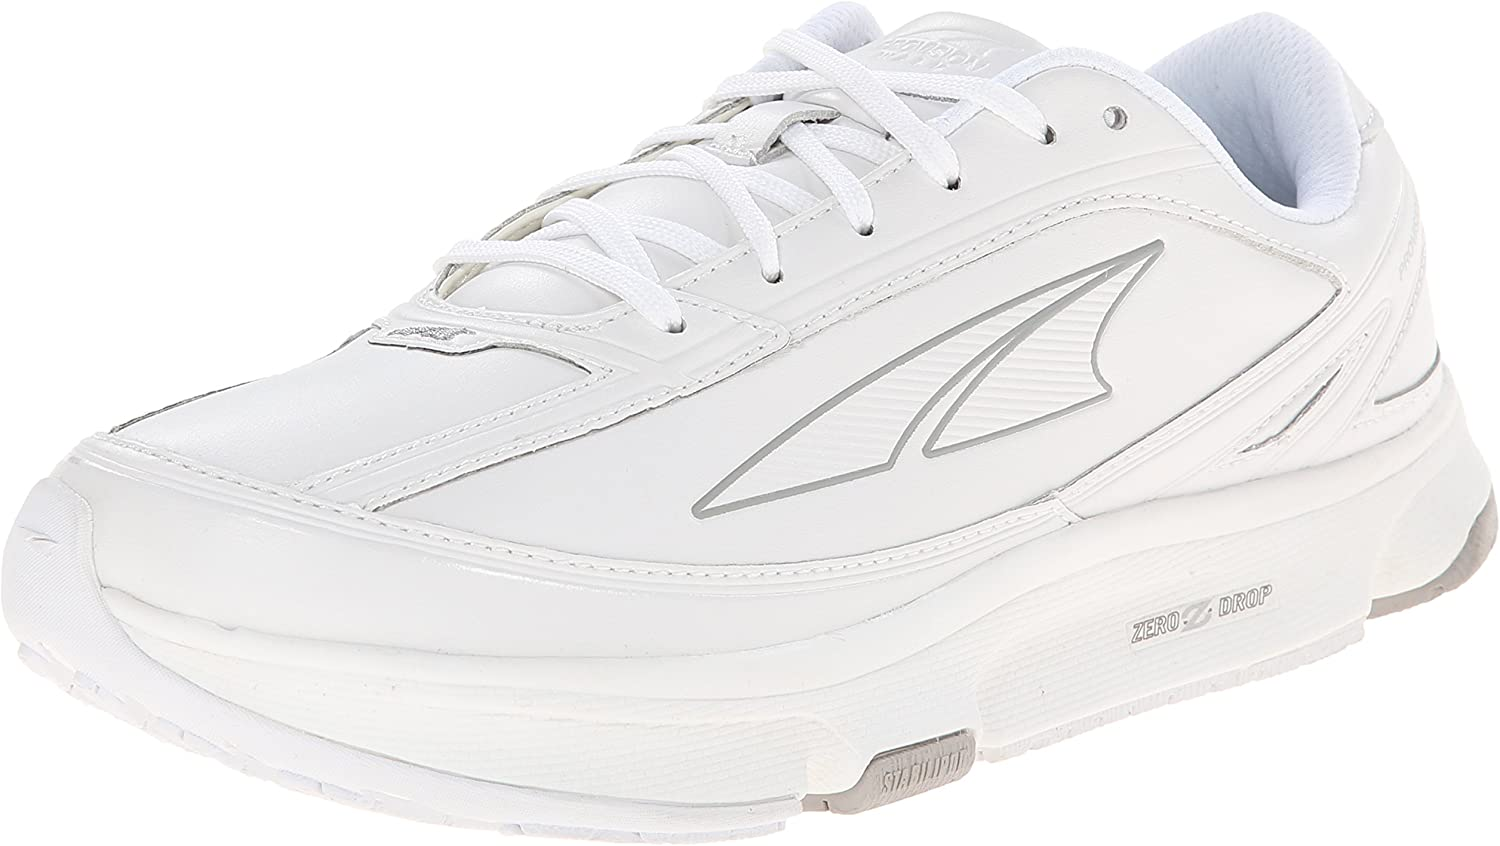 Altra Running Womens Provisioness Walker shoes, White, 5.5 M US